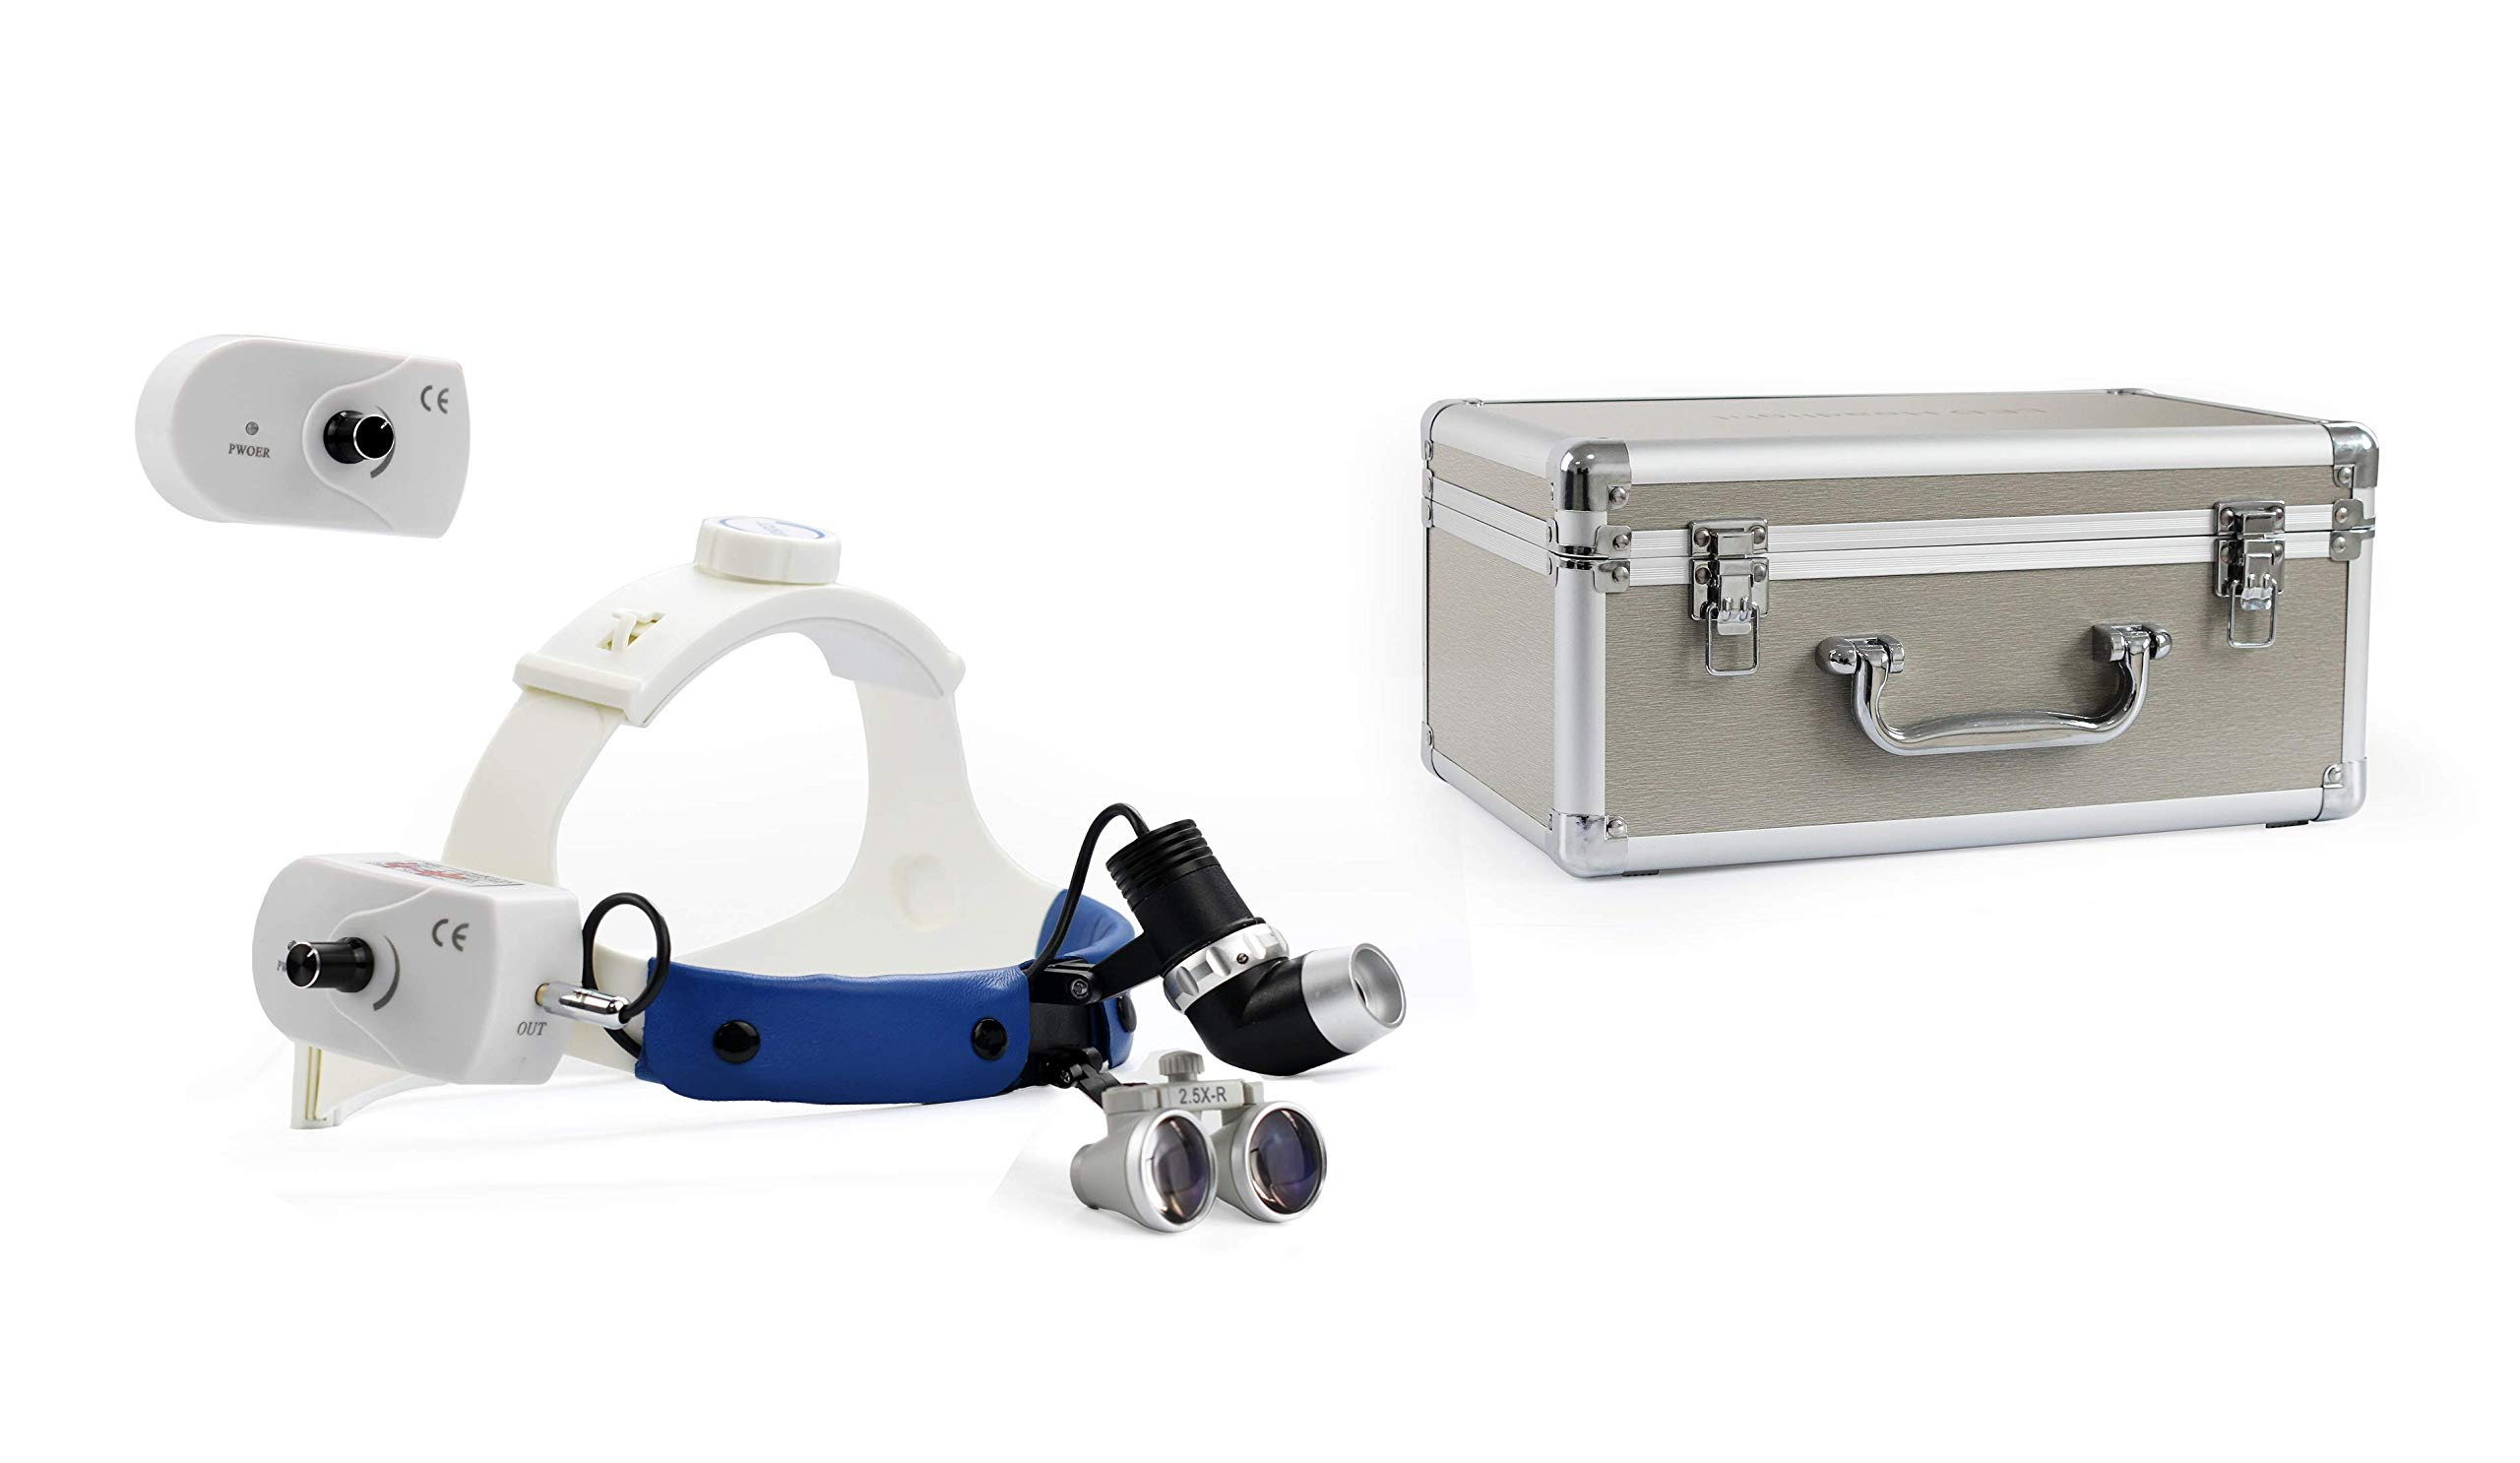 OUBO BRAND 2.5X-R Surgical ENT LED Headlight JD2600 Brightness Adjustable with Aluminum Box